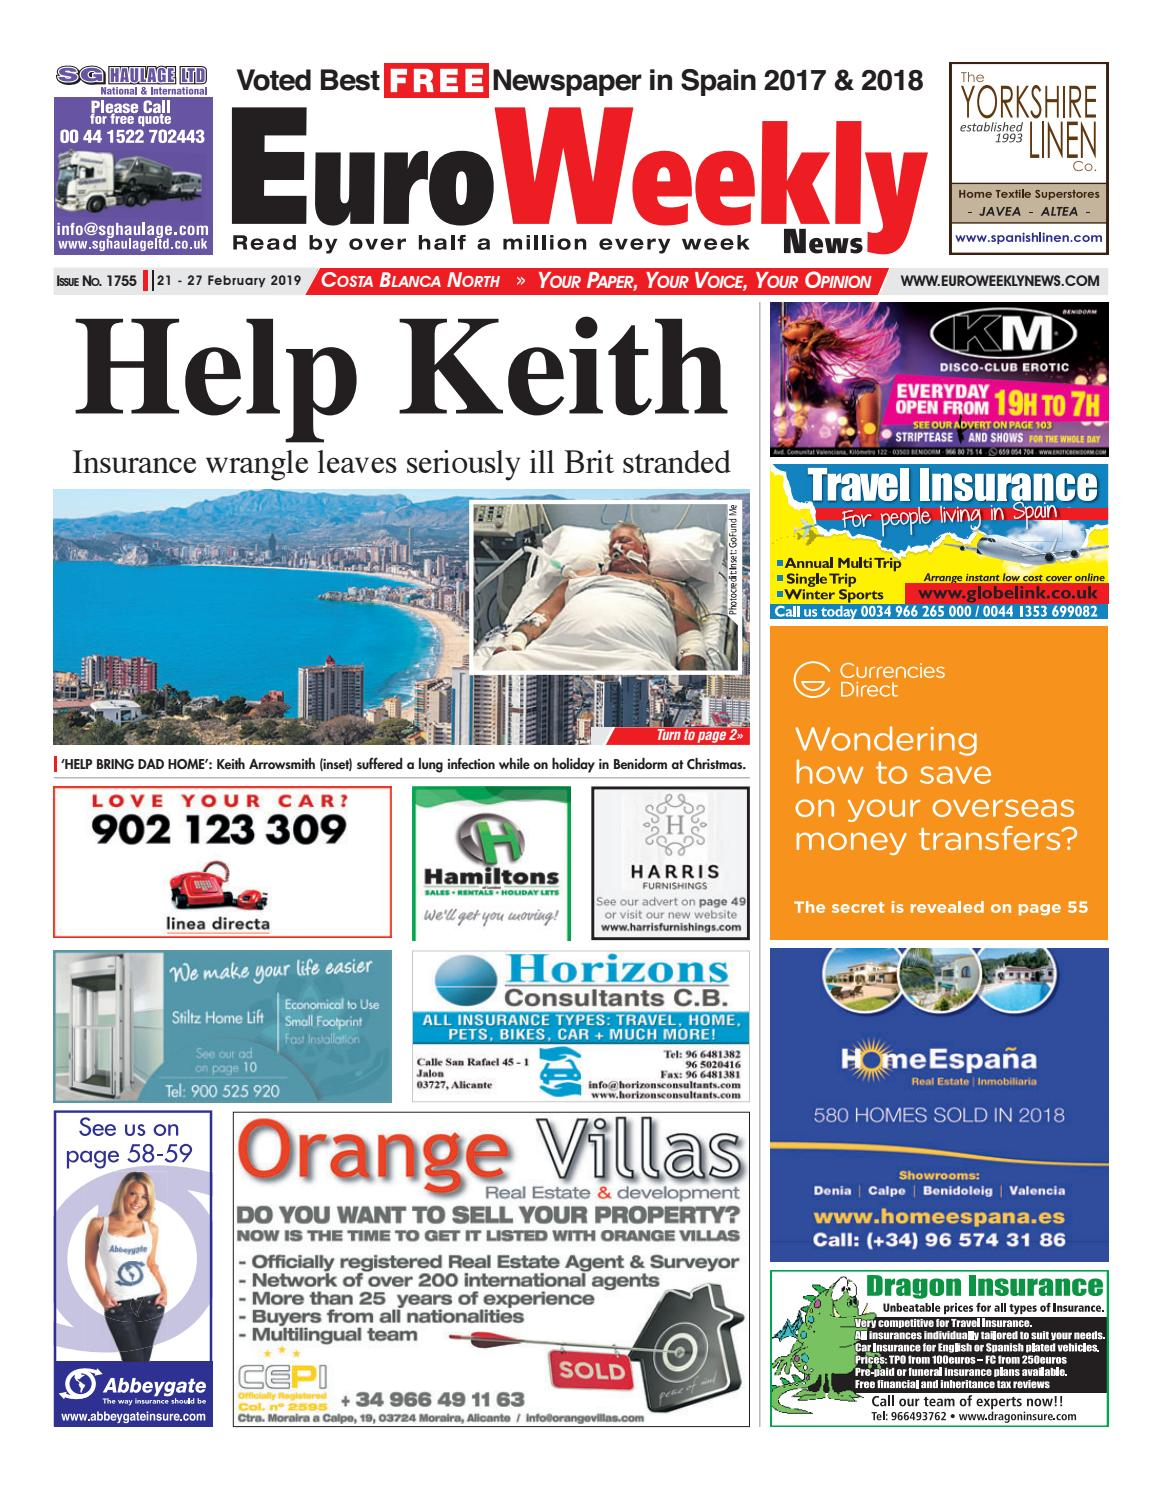 Euro Weekly News - Costa Blanca North 21 - 27 Feb 2019 Issue 1755 by Euro  Weekly News Media S.A. - issuu 220c6cc07